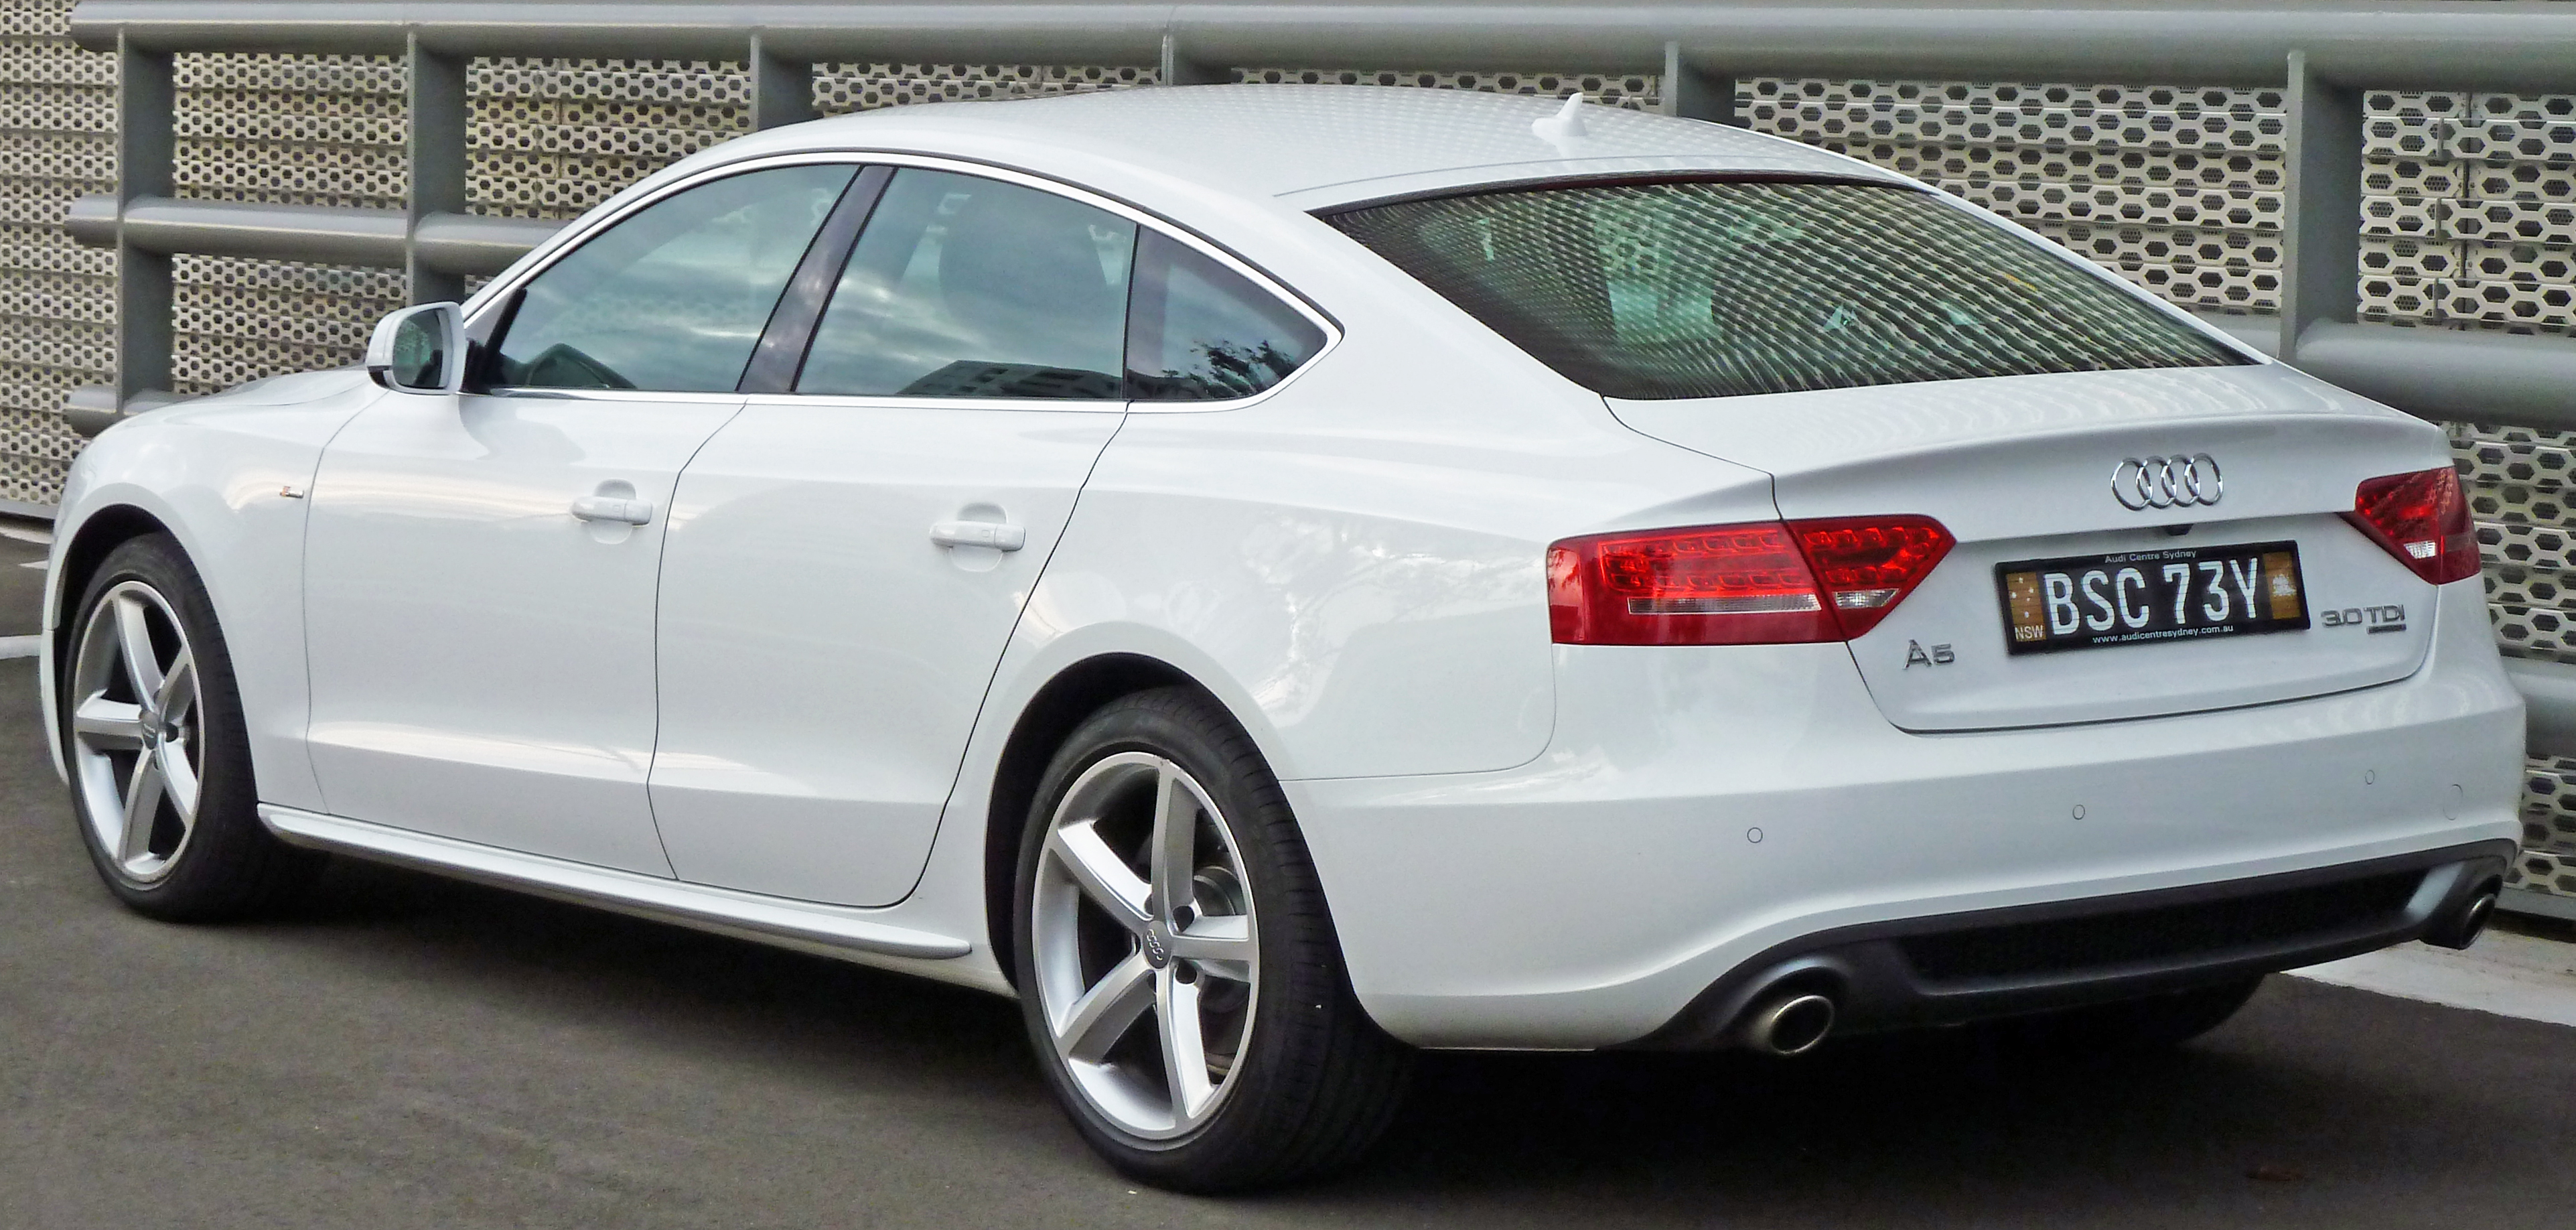 2010 Audi A5 8t3 – pictures information and specs Auto Database